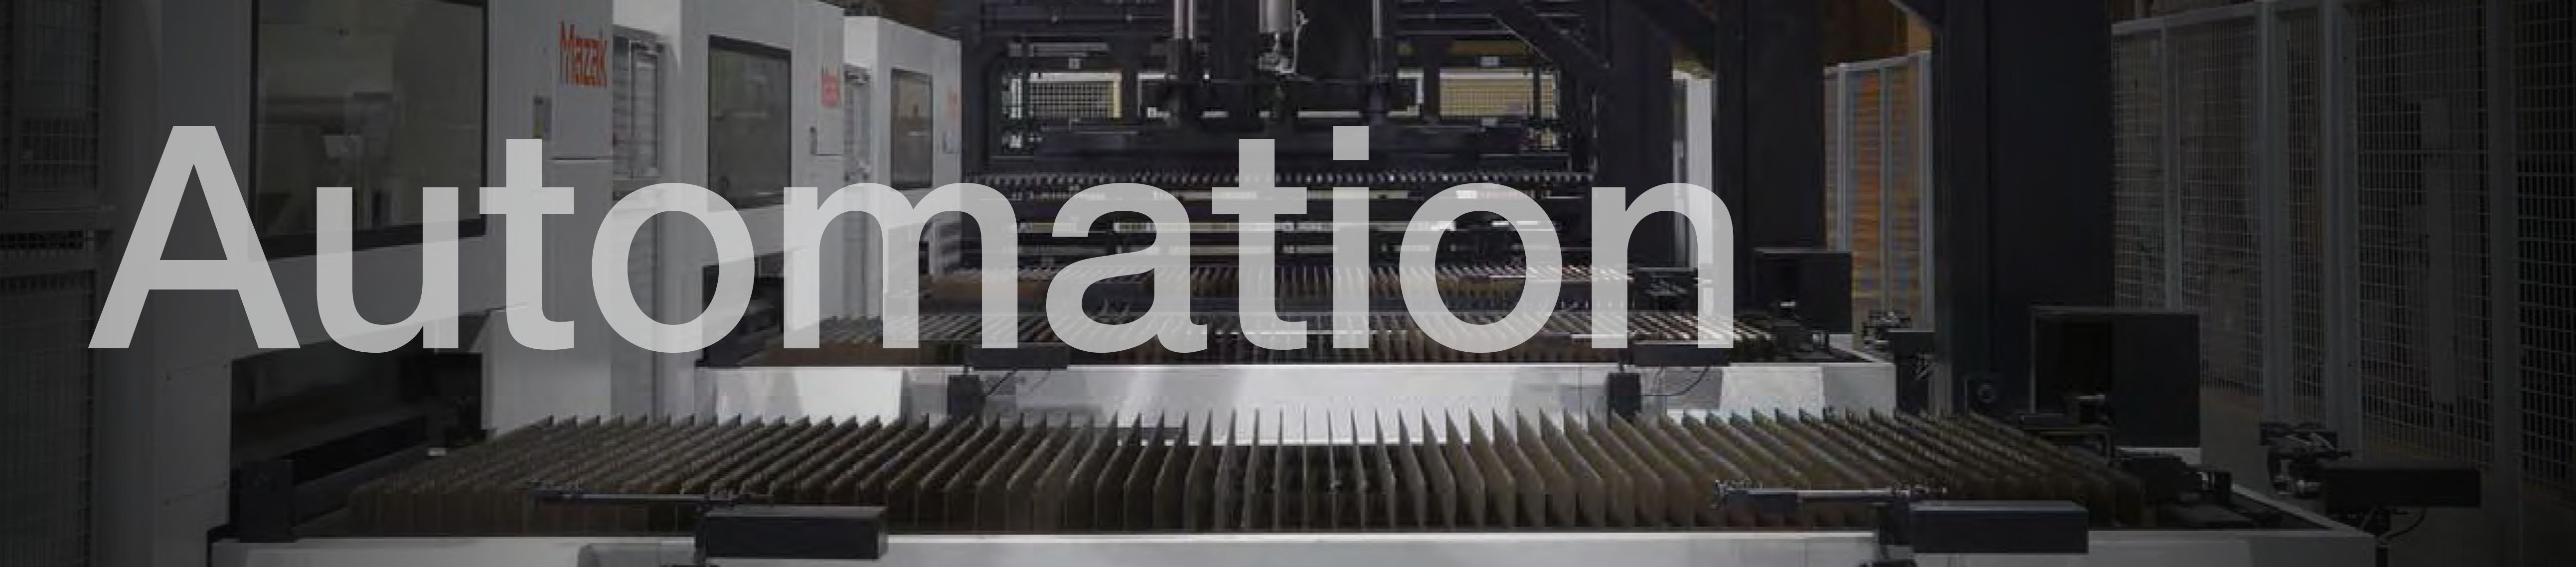 Laser cutting automation